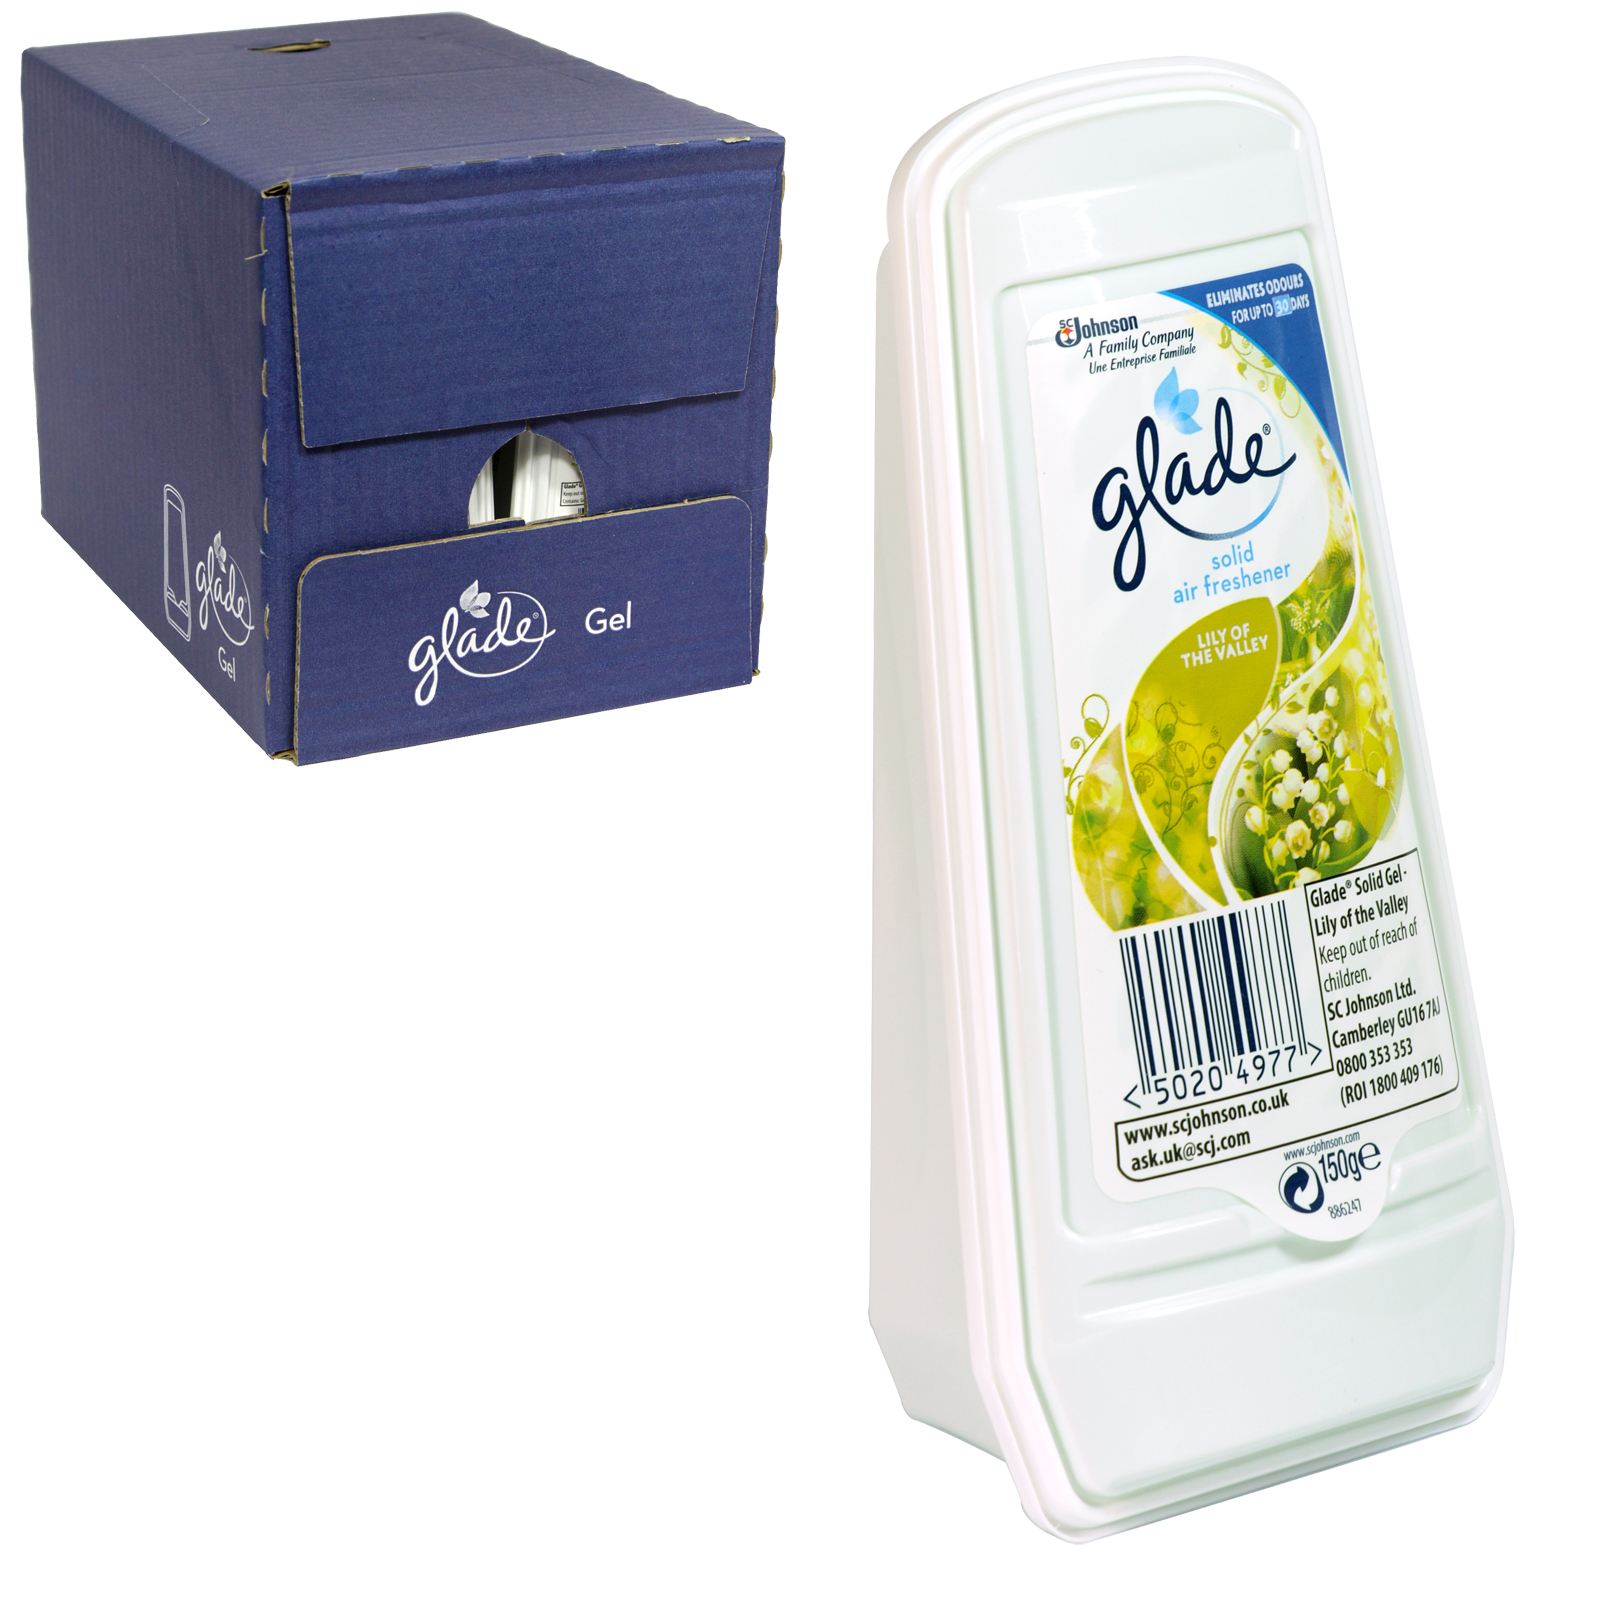 GLADE ESSENCE SOLID GEL 150GM LILY OF THE VALLEY X8